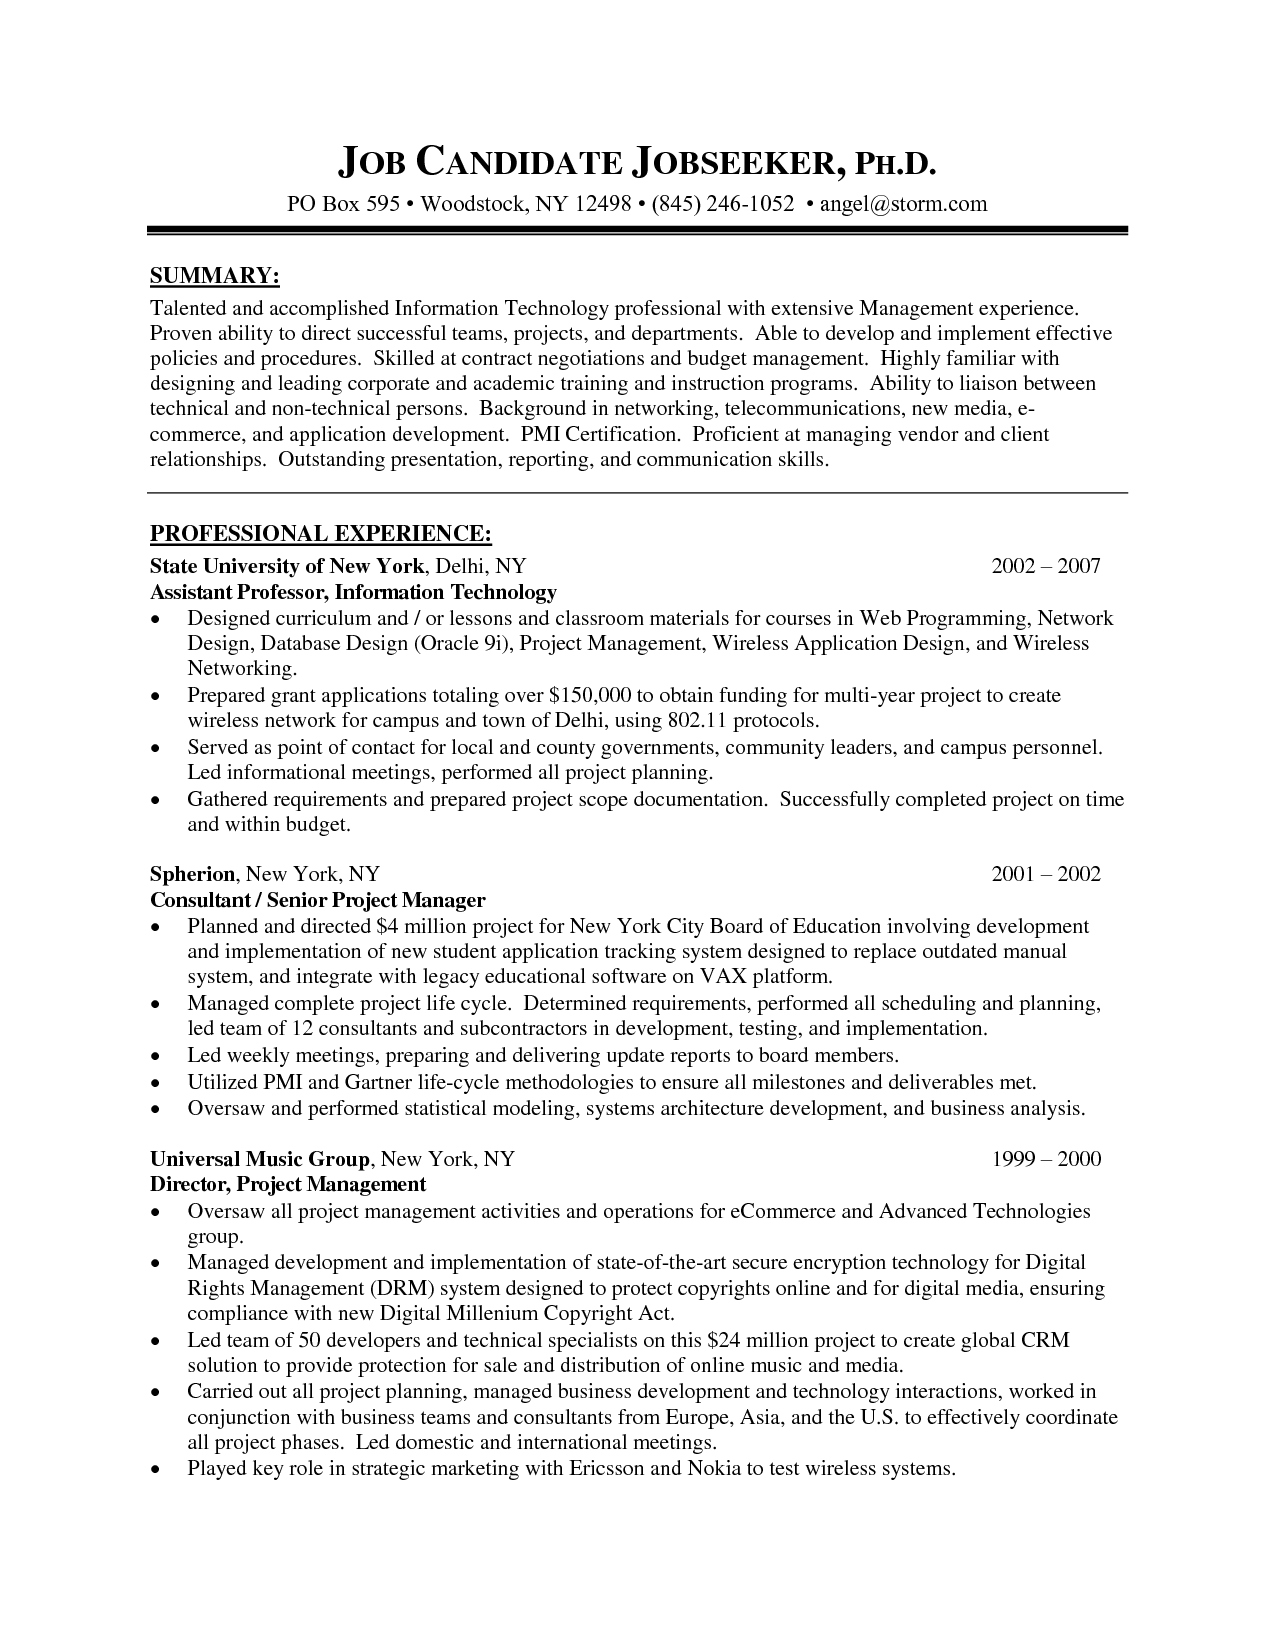 Manager resume free sample senior project with summary examples manager resume free sample senior project with summary examples compare writing services find local yelopaper